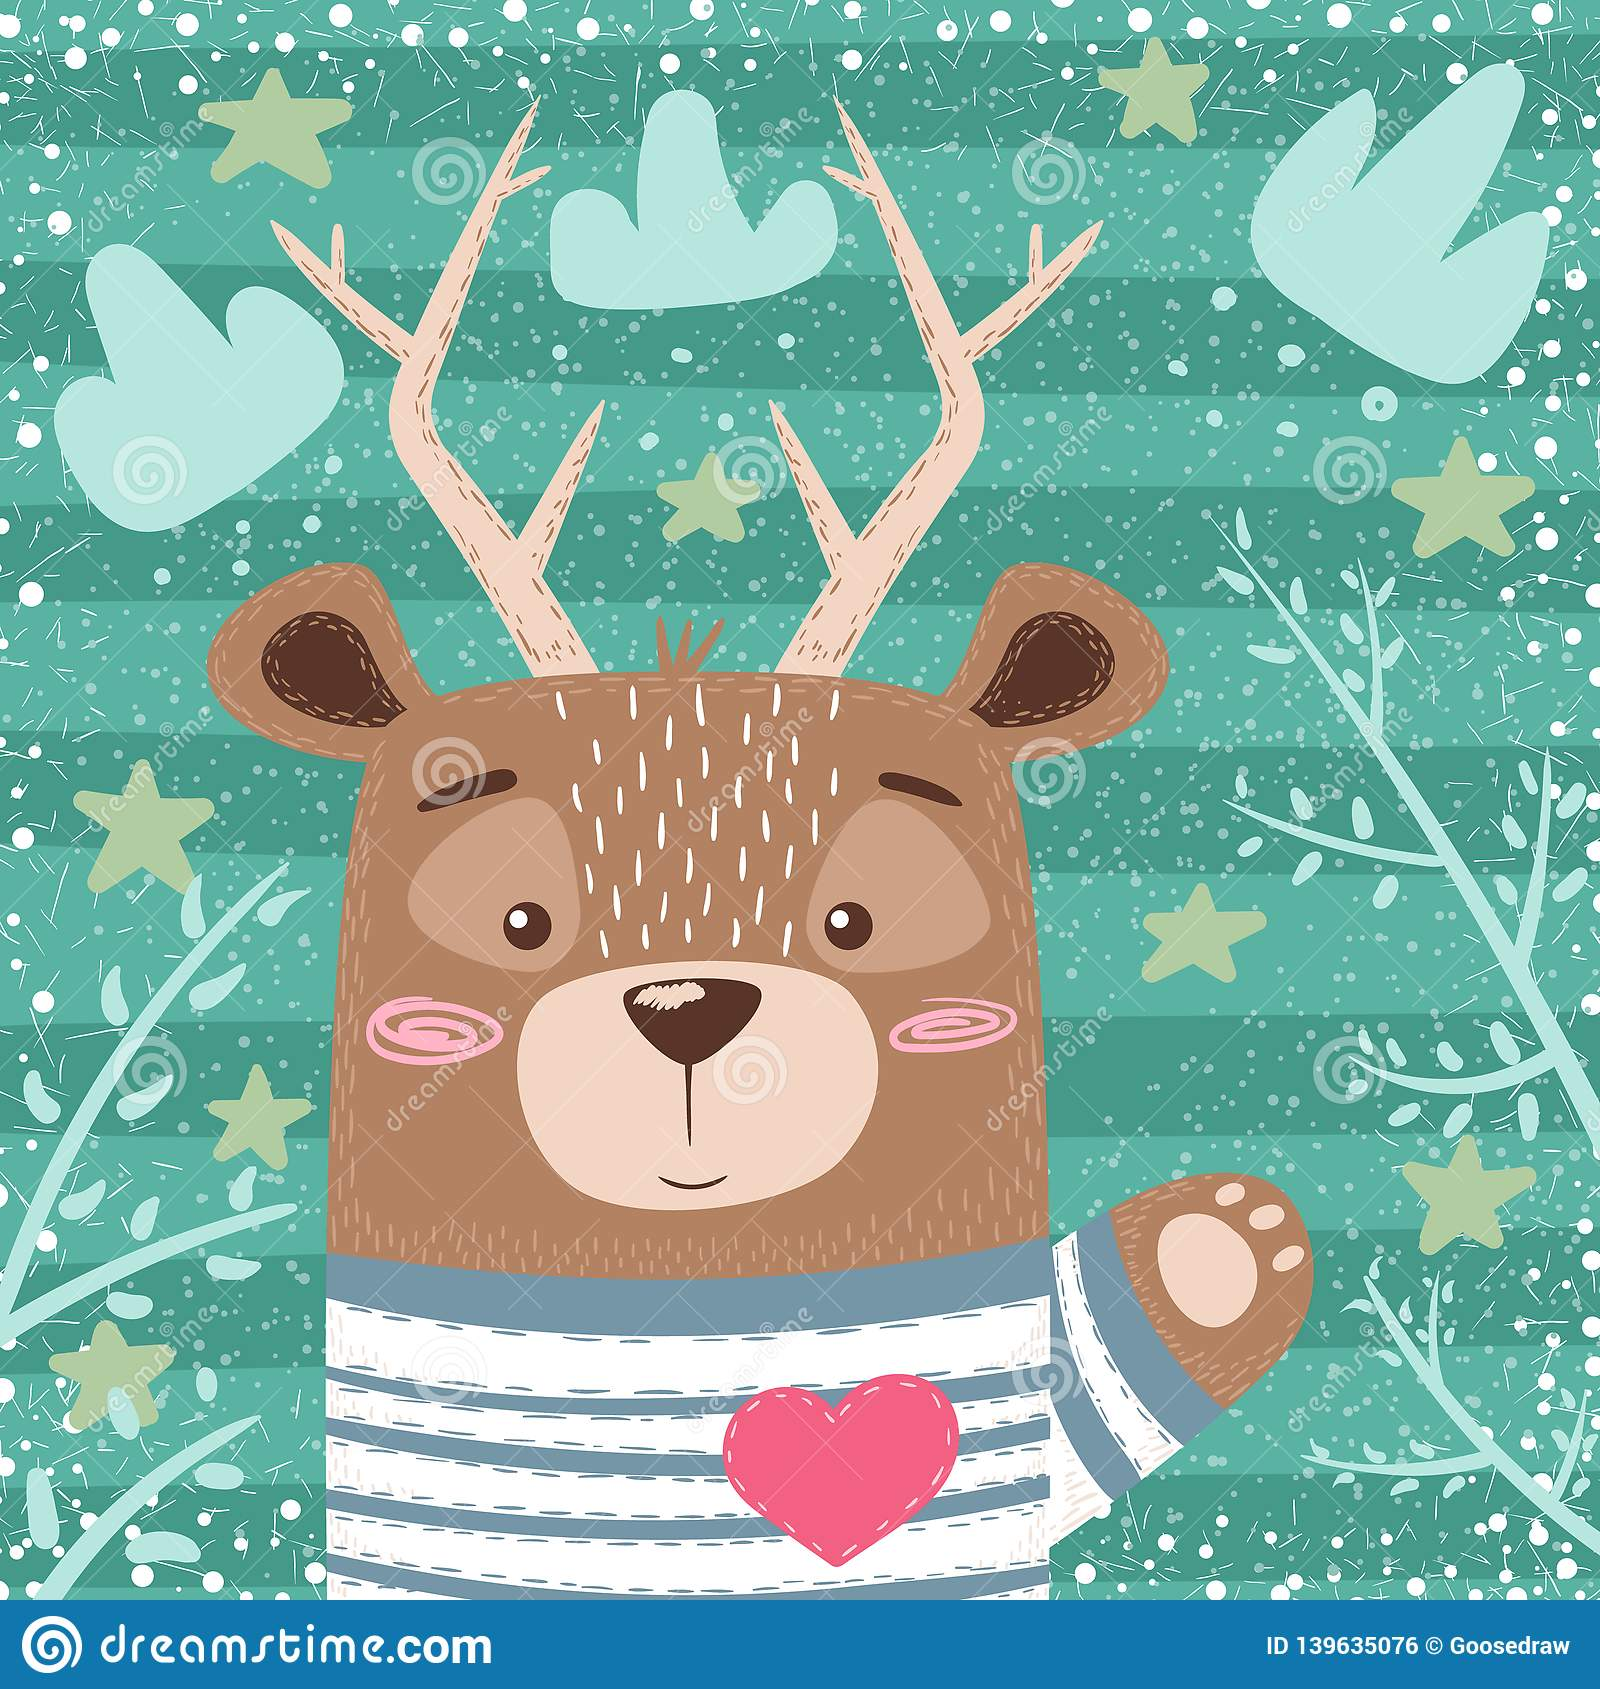 Cute bear, deer cartoon illustration.